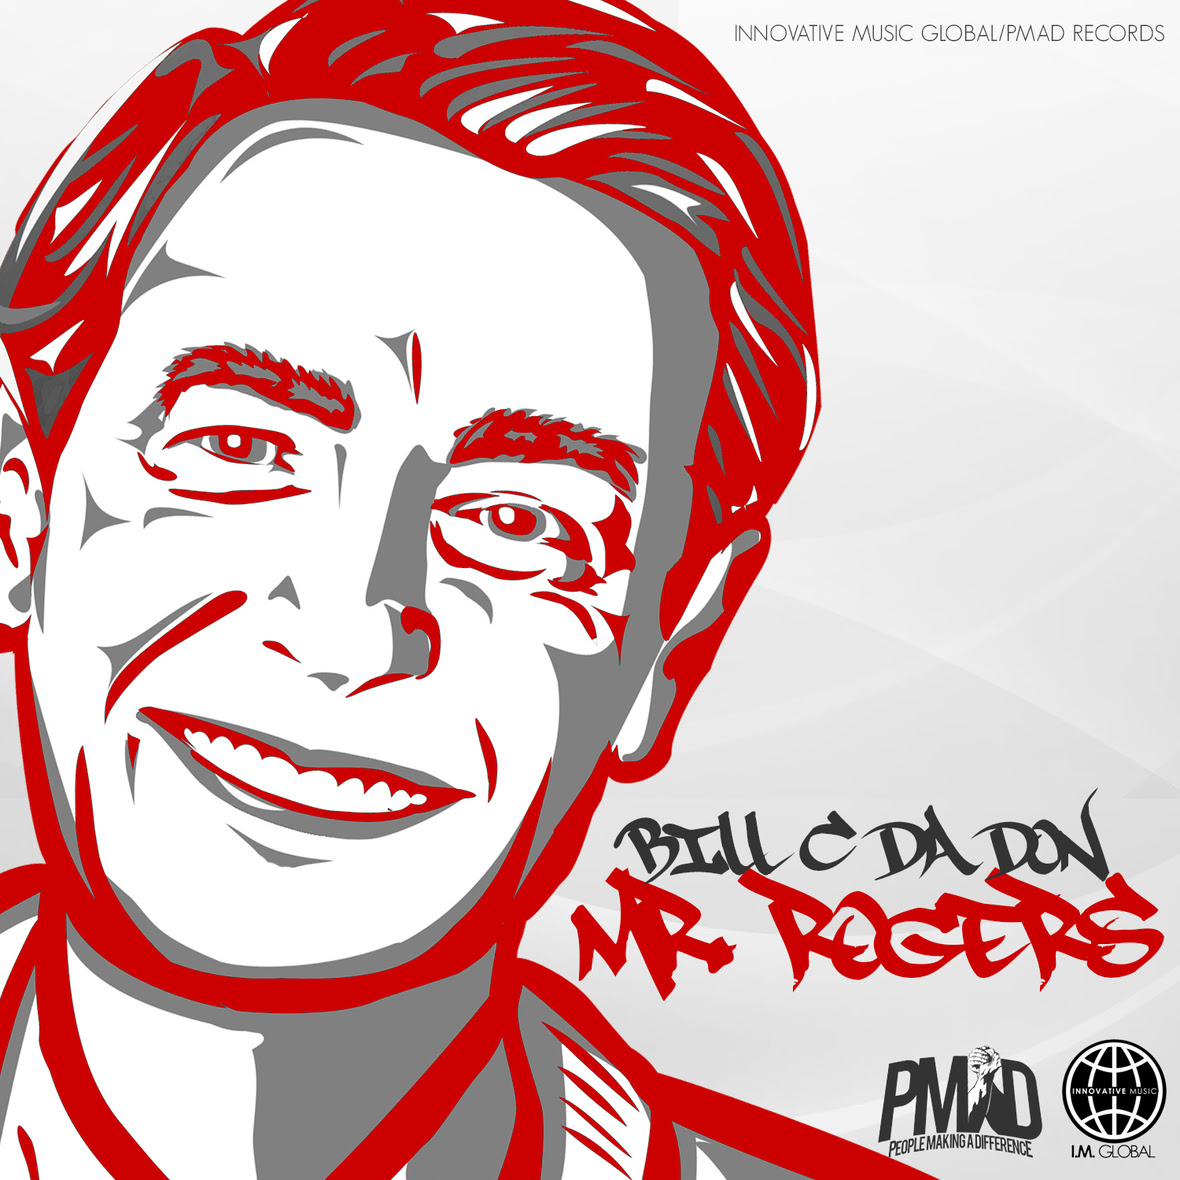 Bill C Da Don - Mr. Rogers artwork